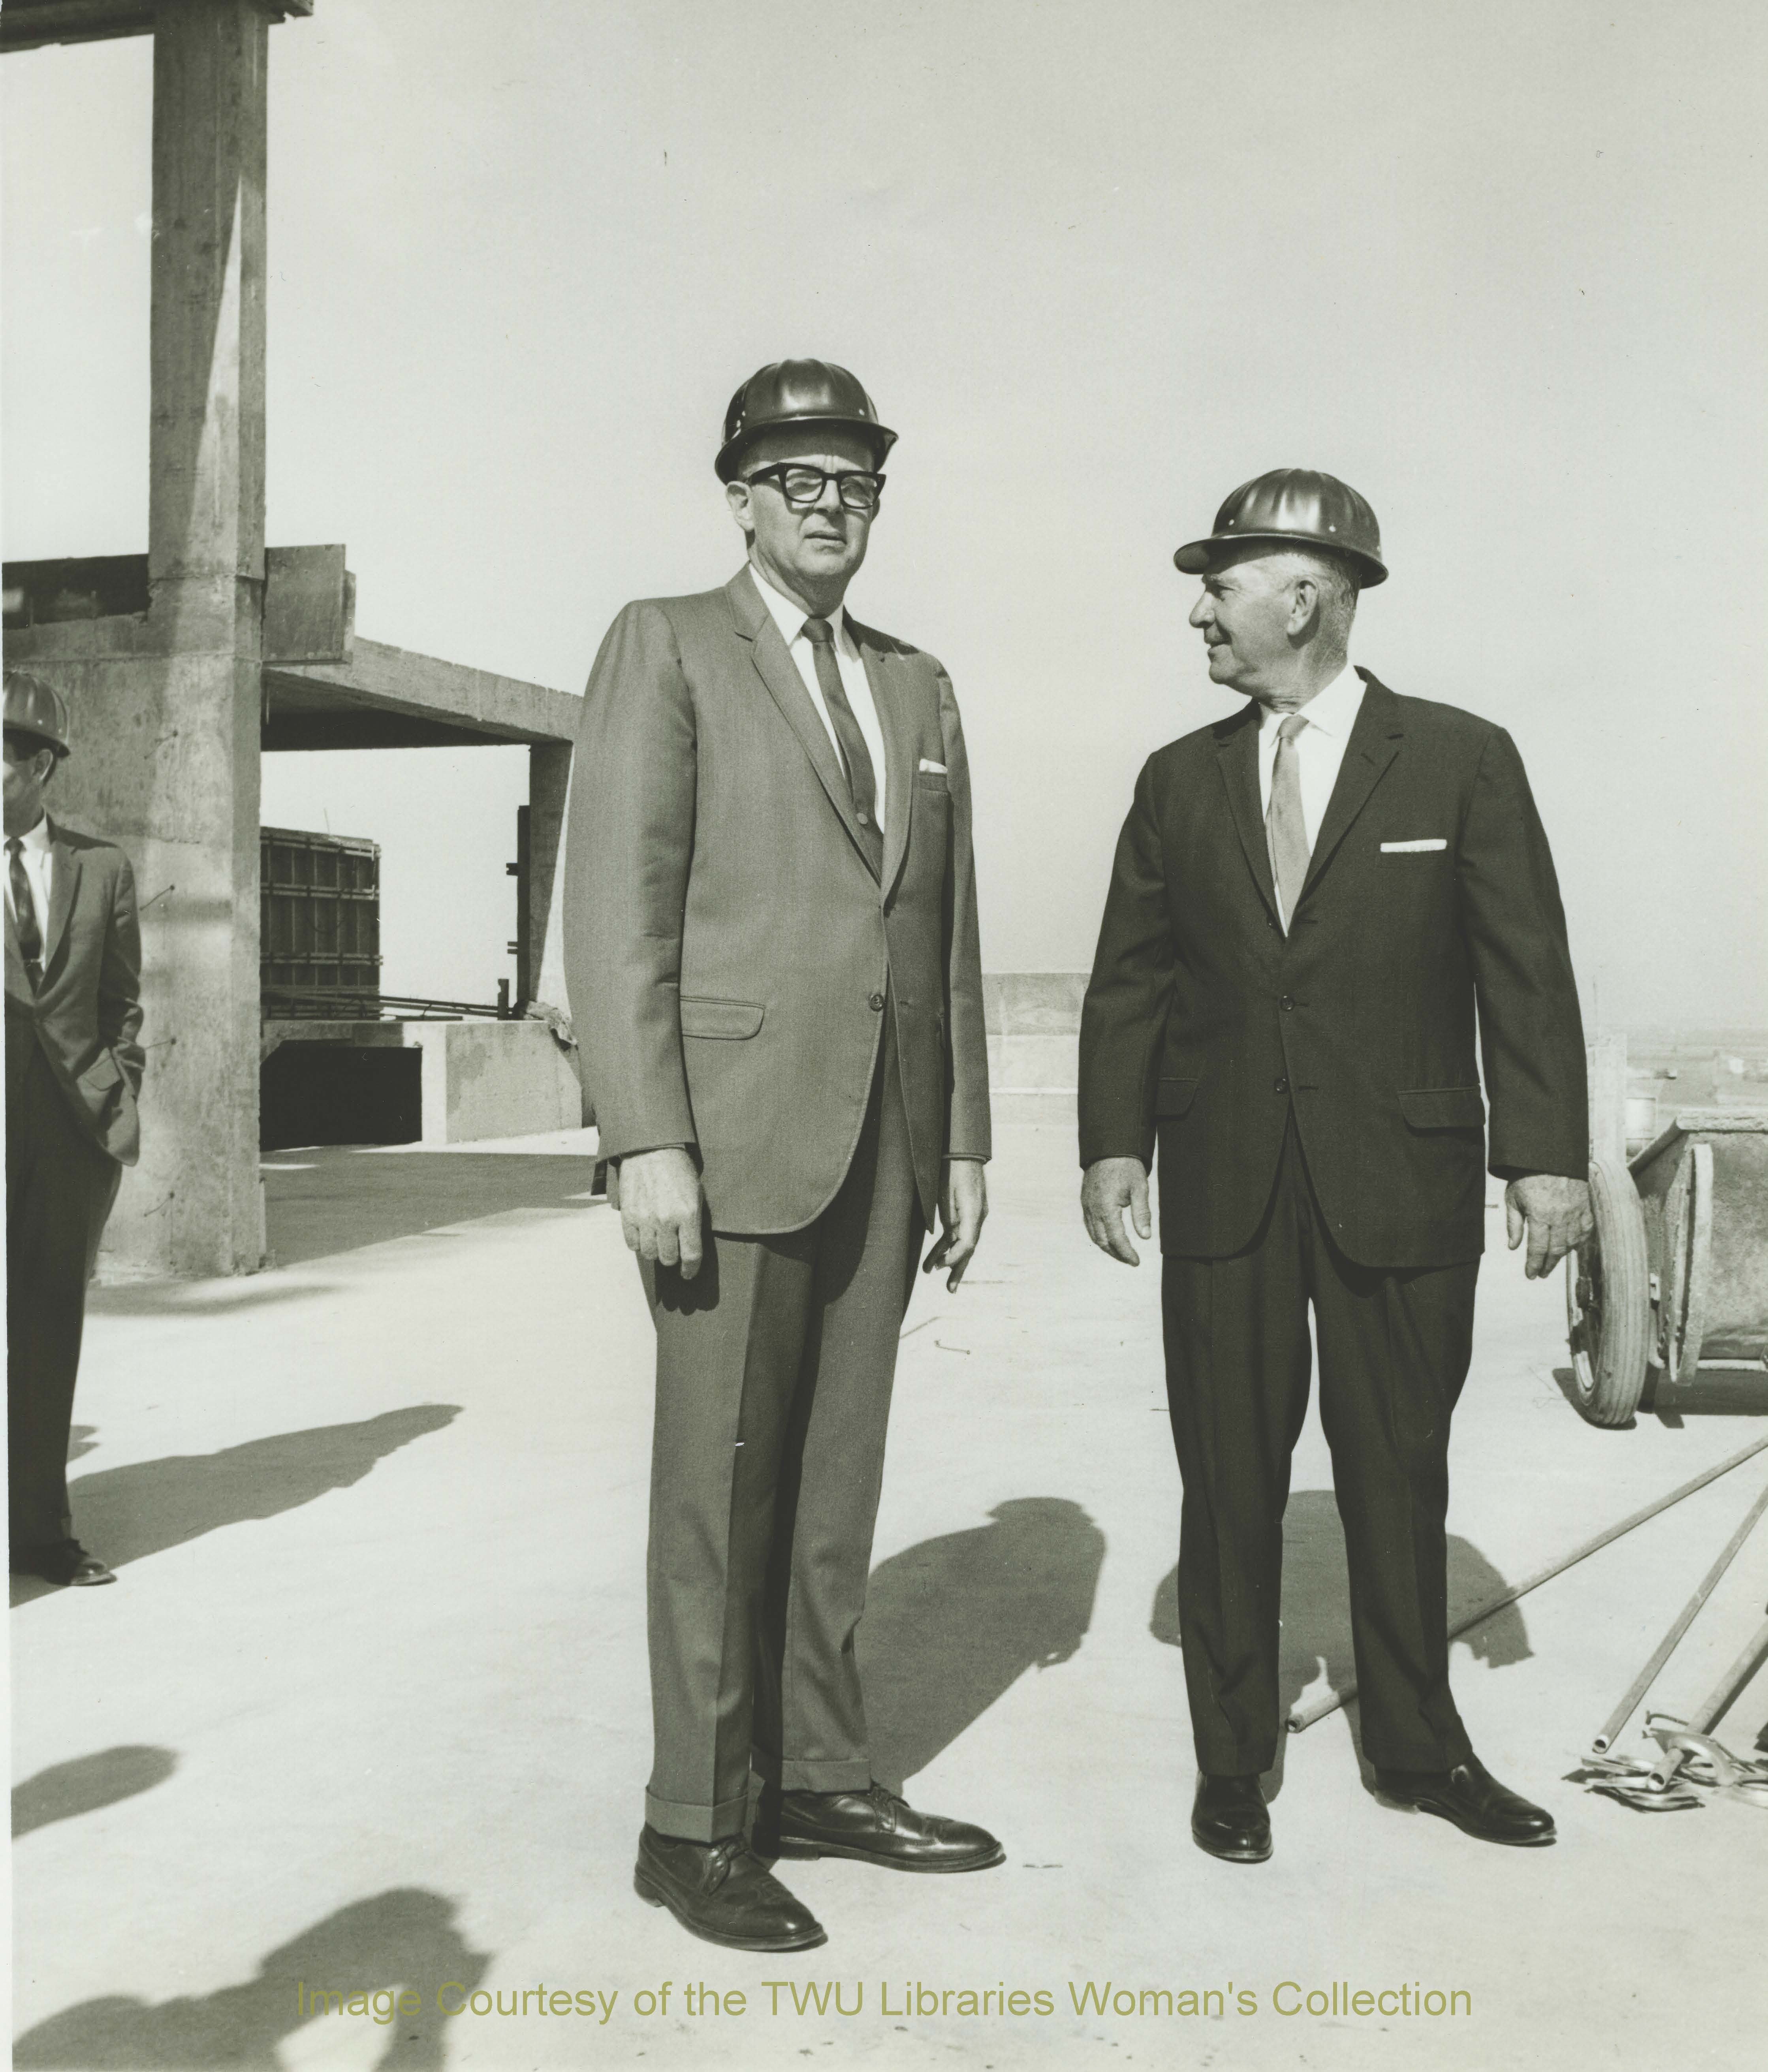 Dr. John A. Guinn and Denton mayor, Warren Whitson on top of Stark Hall during construction, Spring 1967. Courtesy of TWU Libraries.